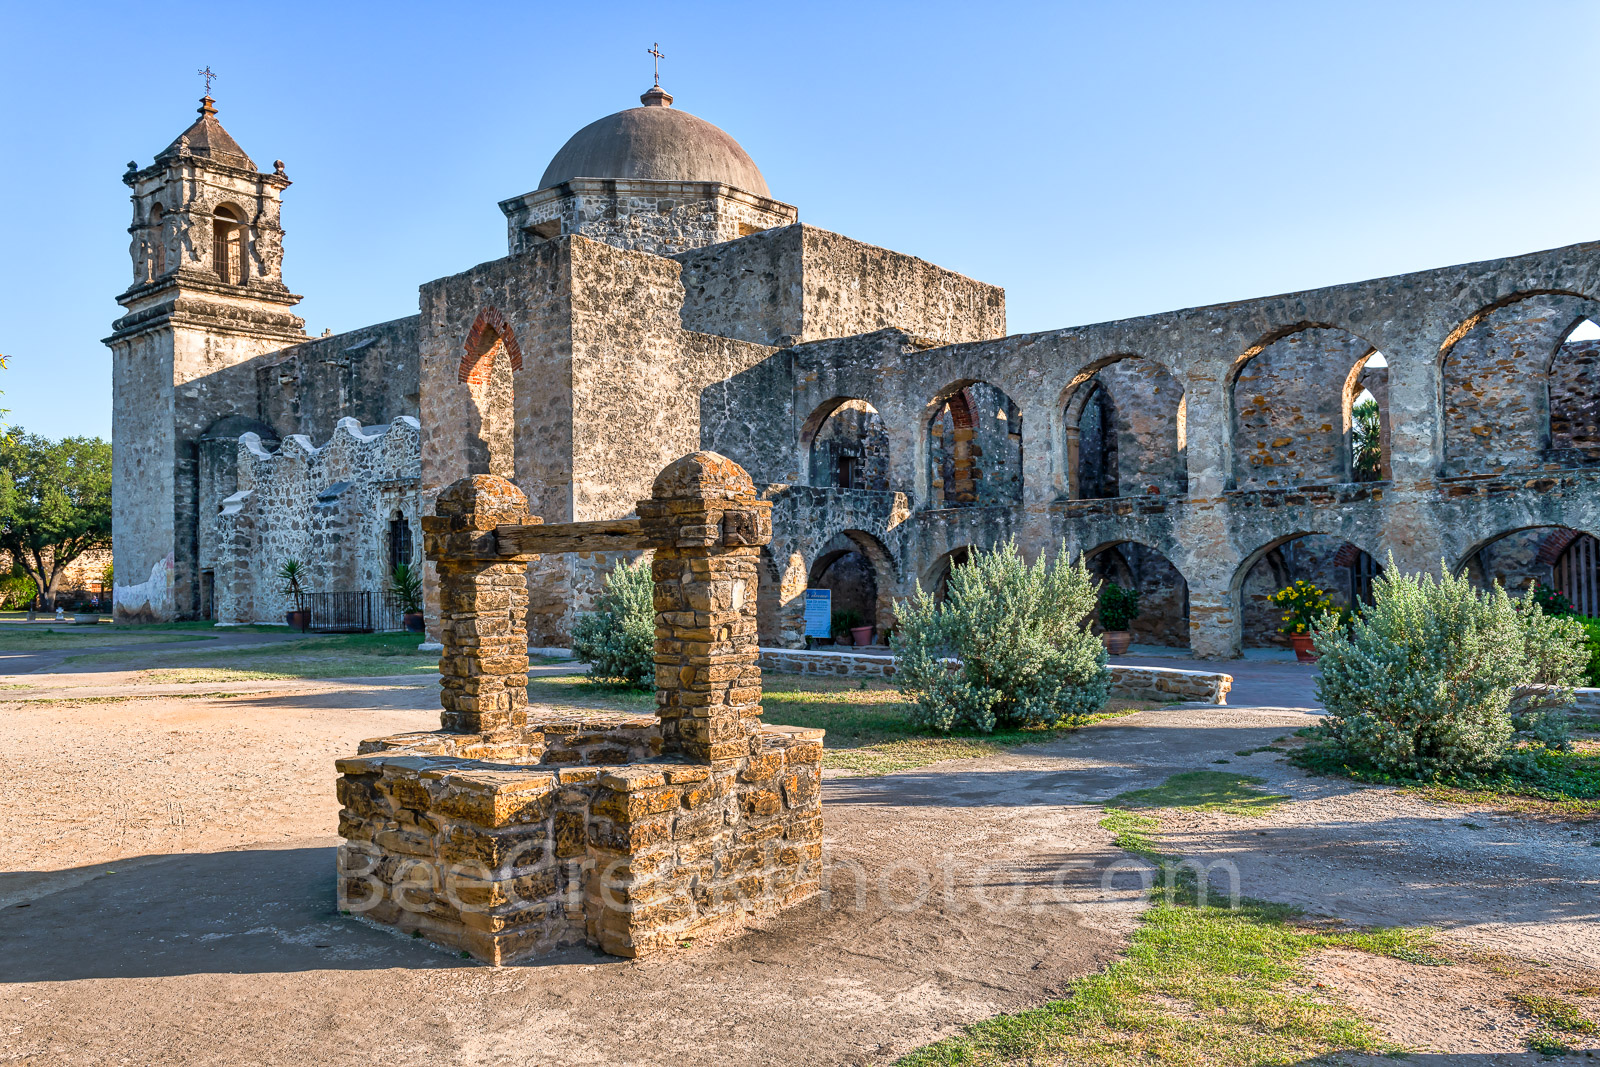 MIssion San Jose, side view, flying buttress, well, dome, steeple, gardem. church, missions, spanish mission, San Antonio, Texas missions, San Antonio Missions National Historical Park, photo